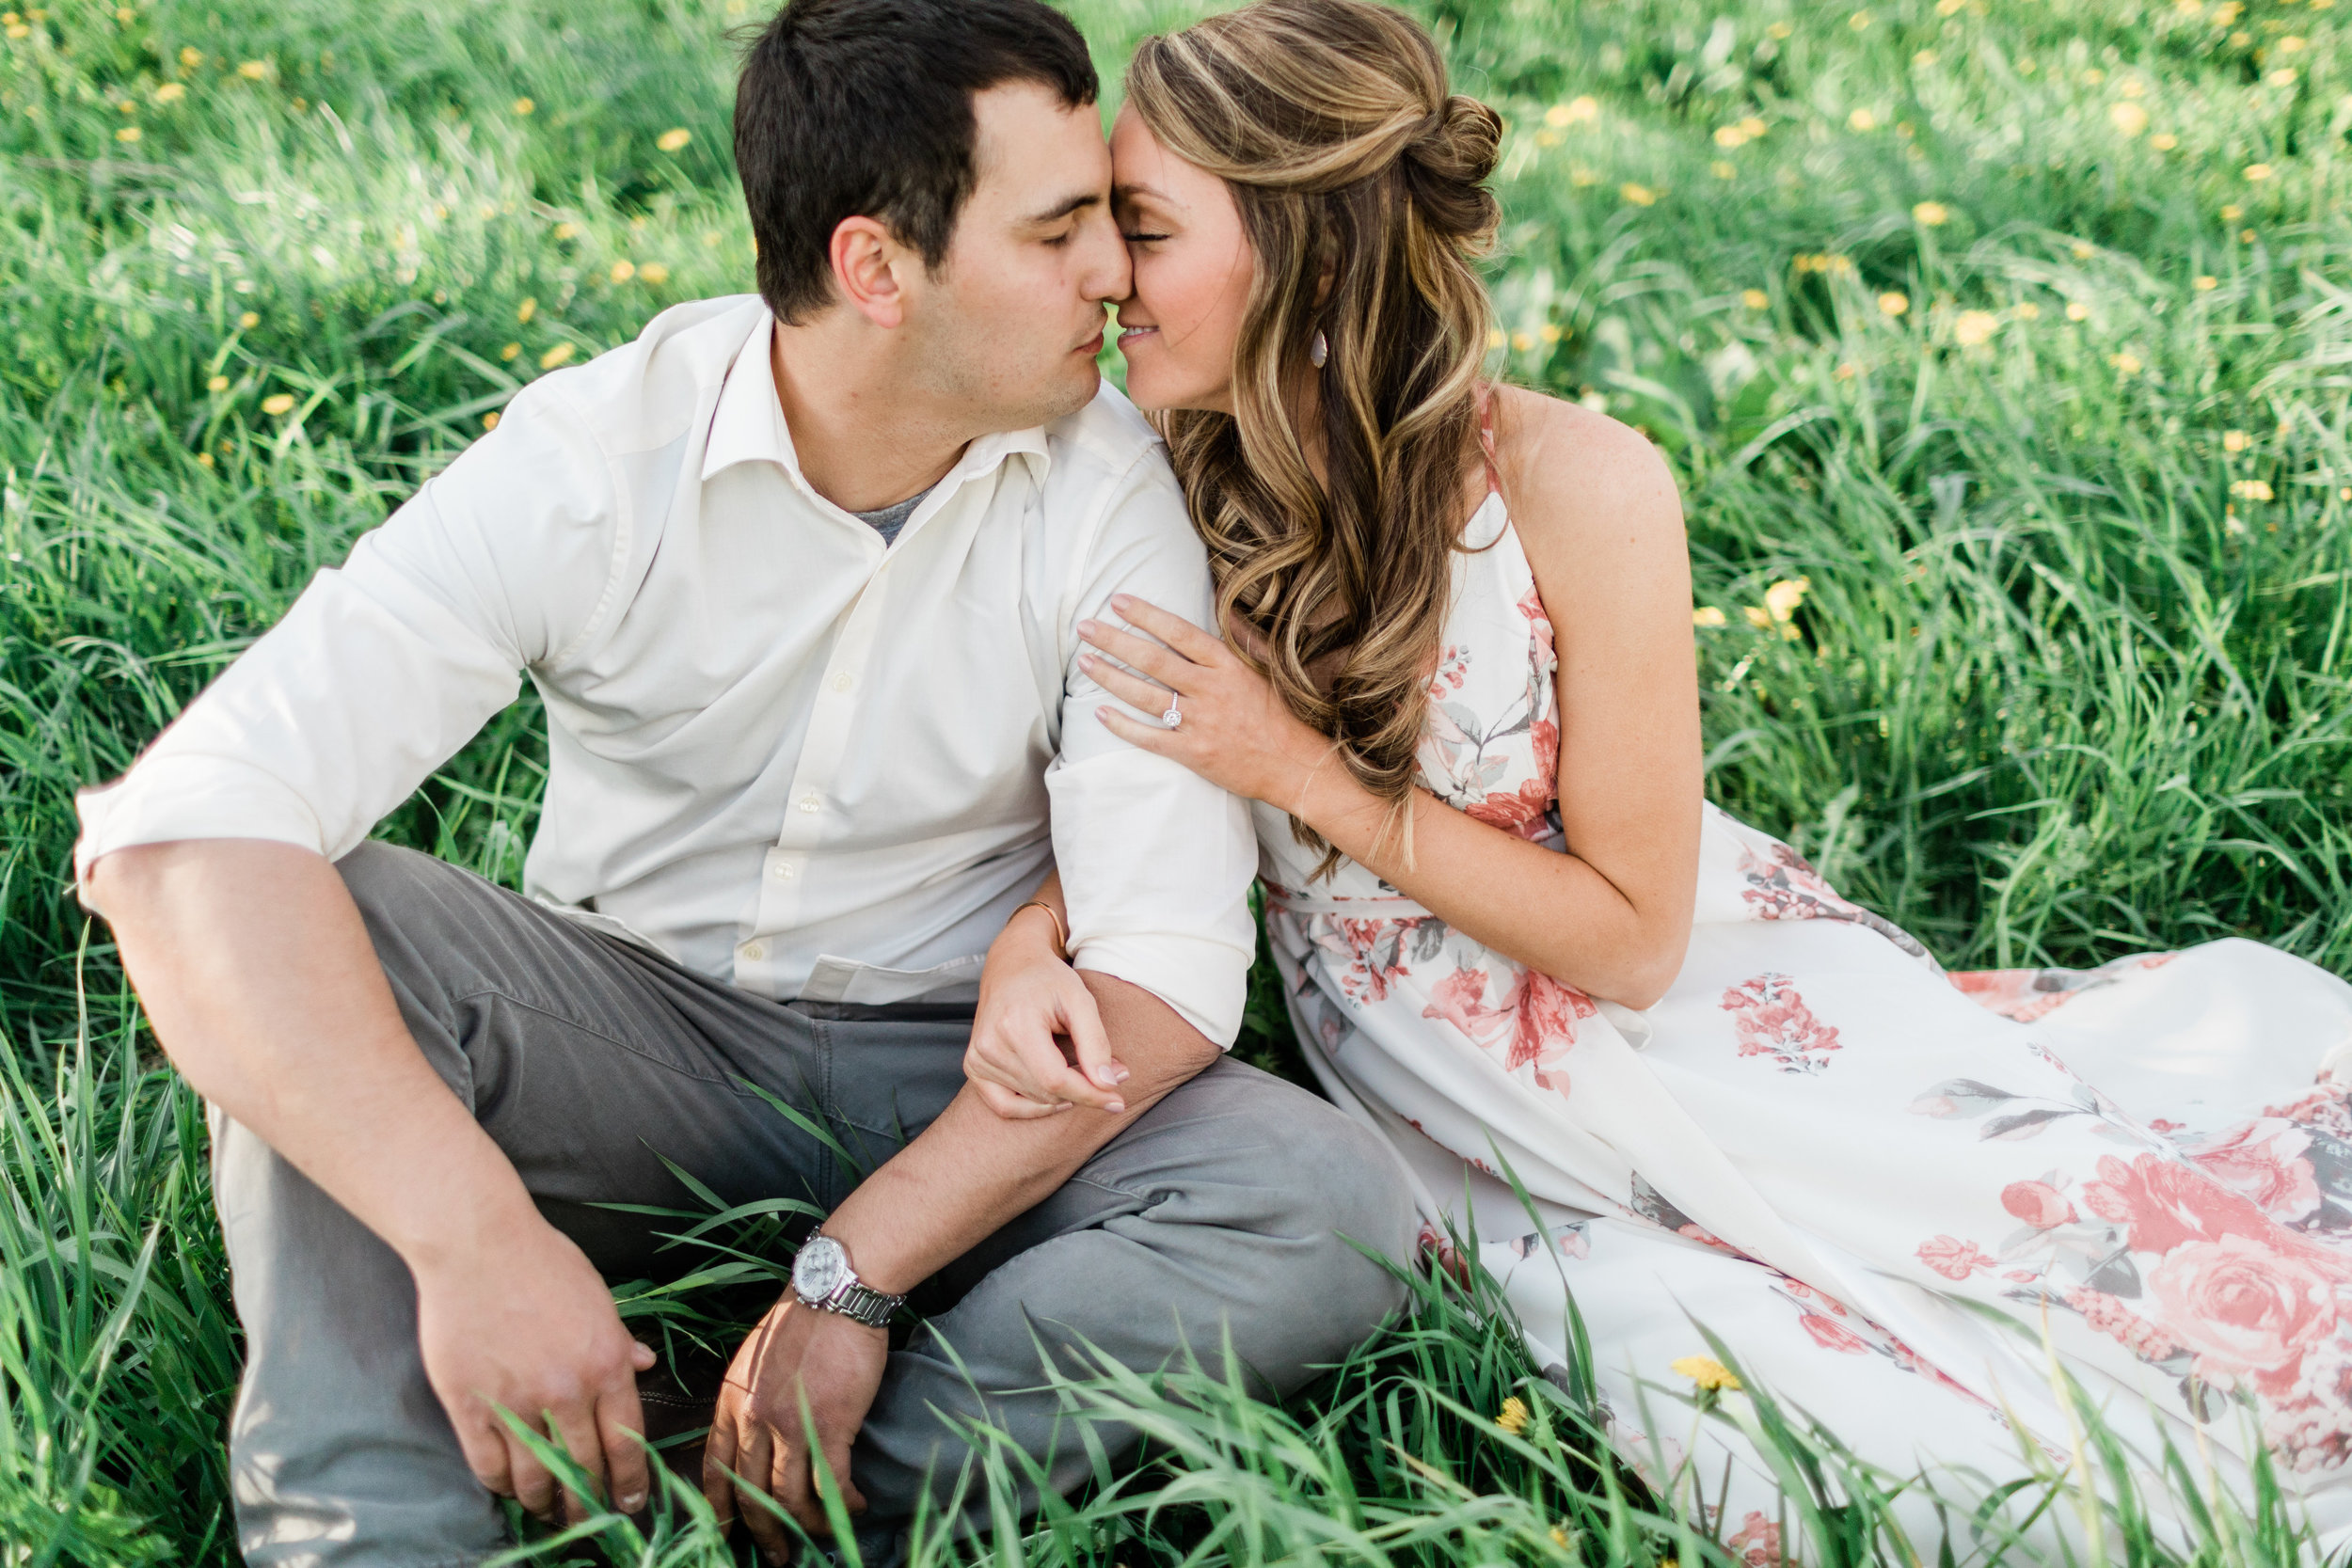 Gorgeous Garden Engagement Photos - The Overwhelmed Bride Wedding BlogGorgeous Garden Engagement Photos - The Overwhelmed Bride Wedding Blog